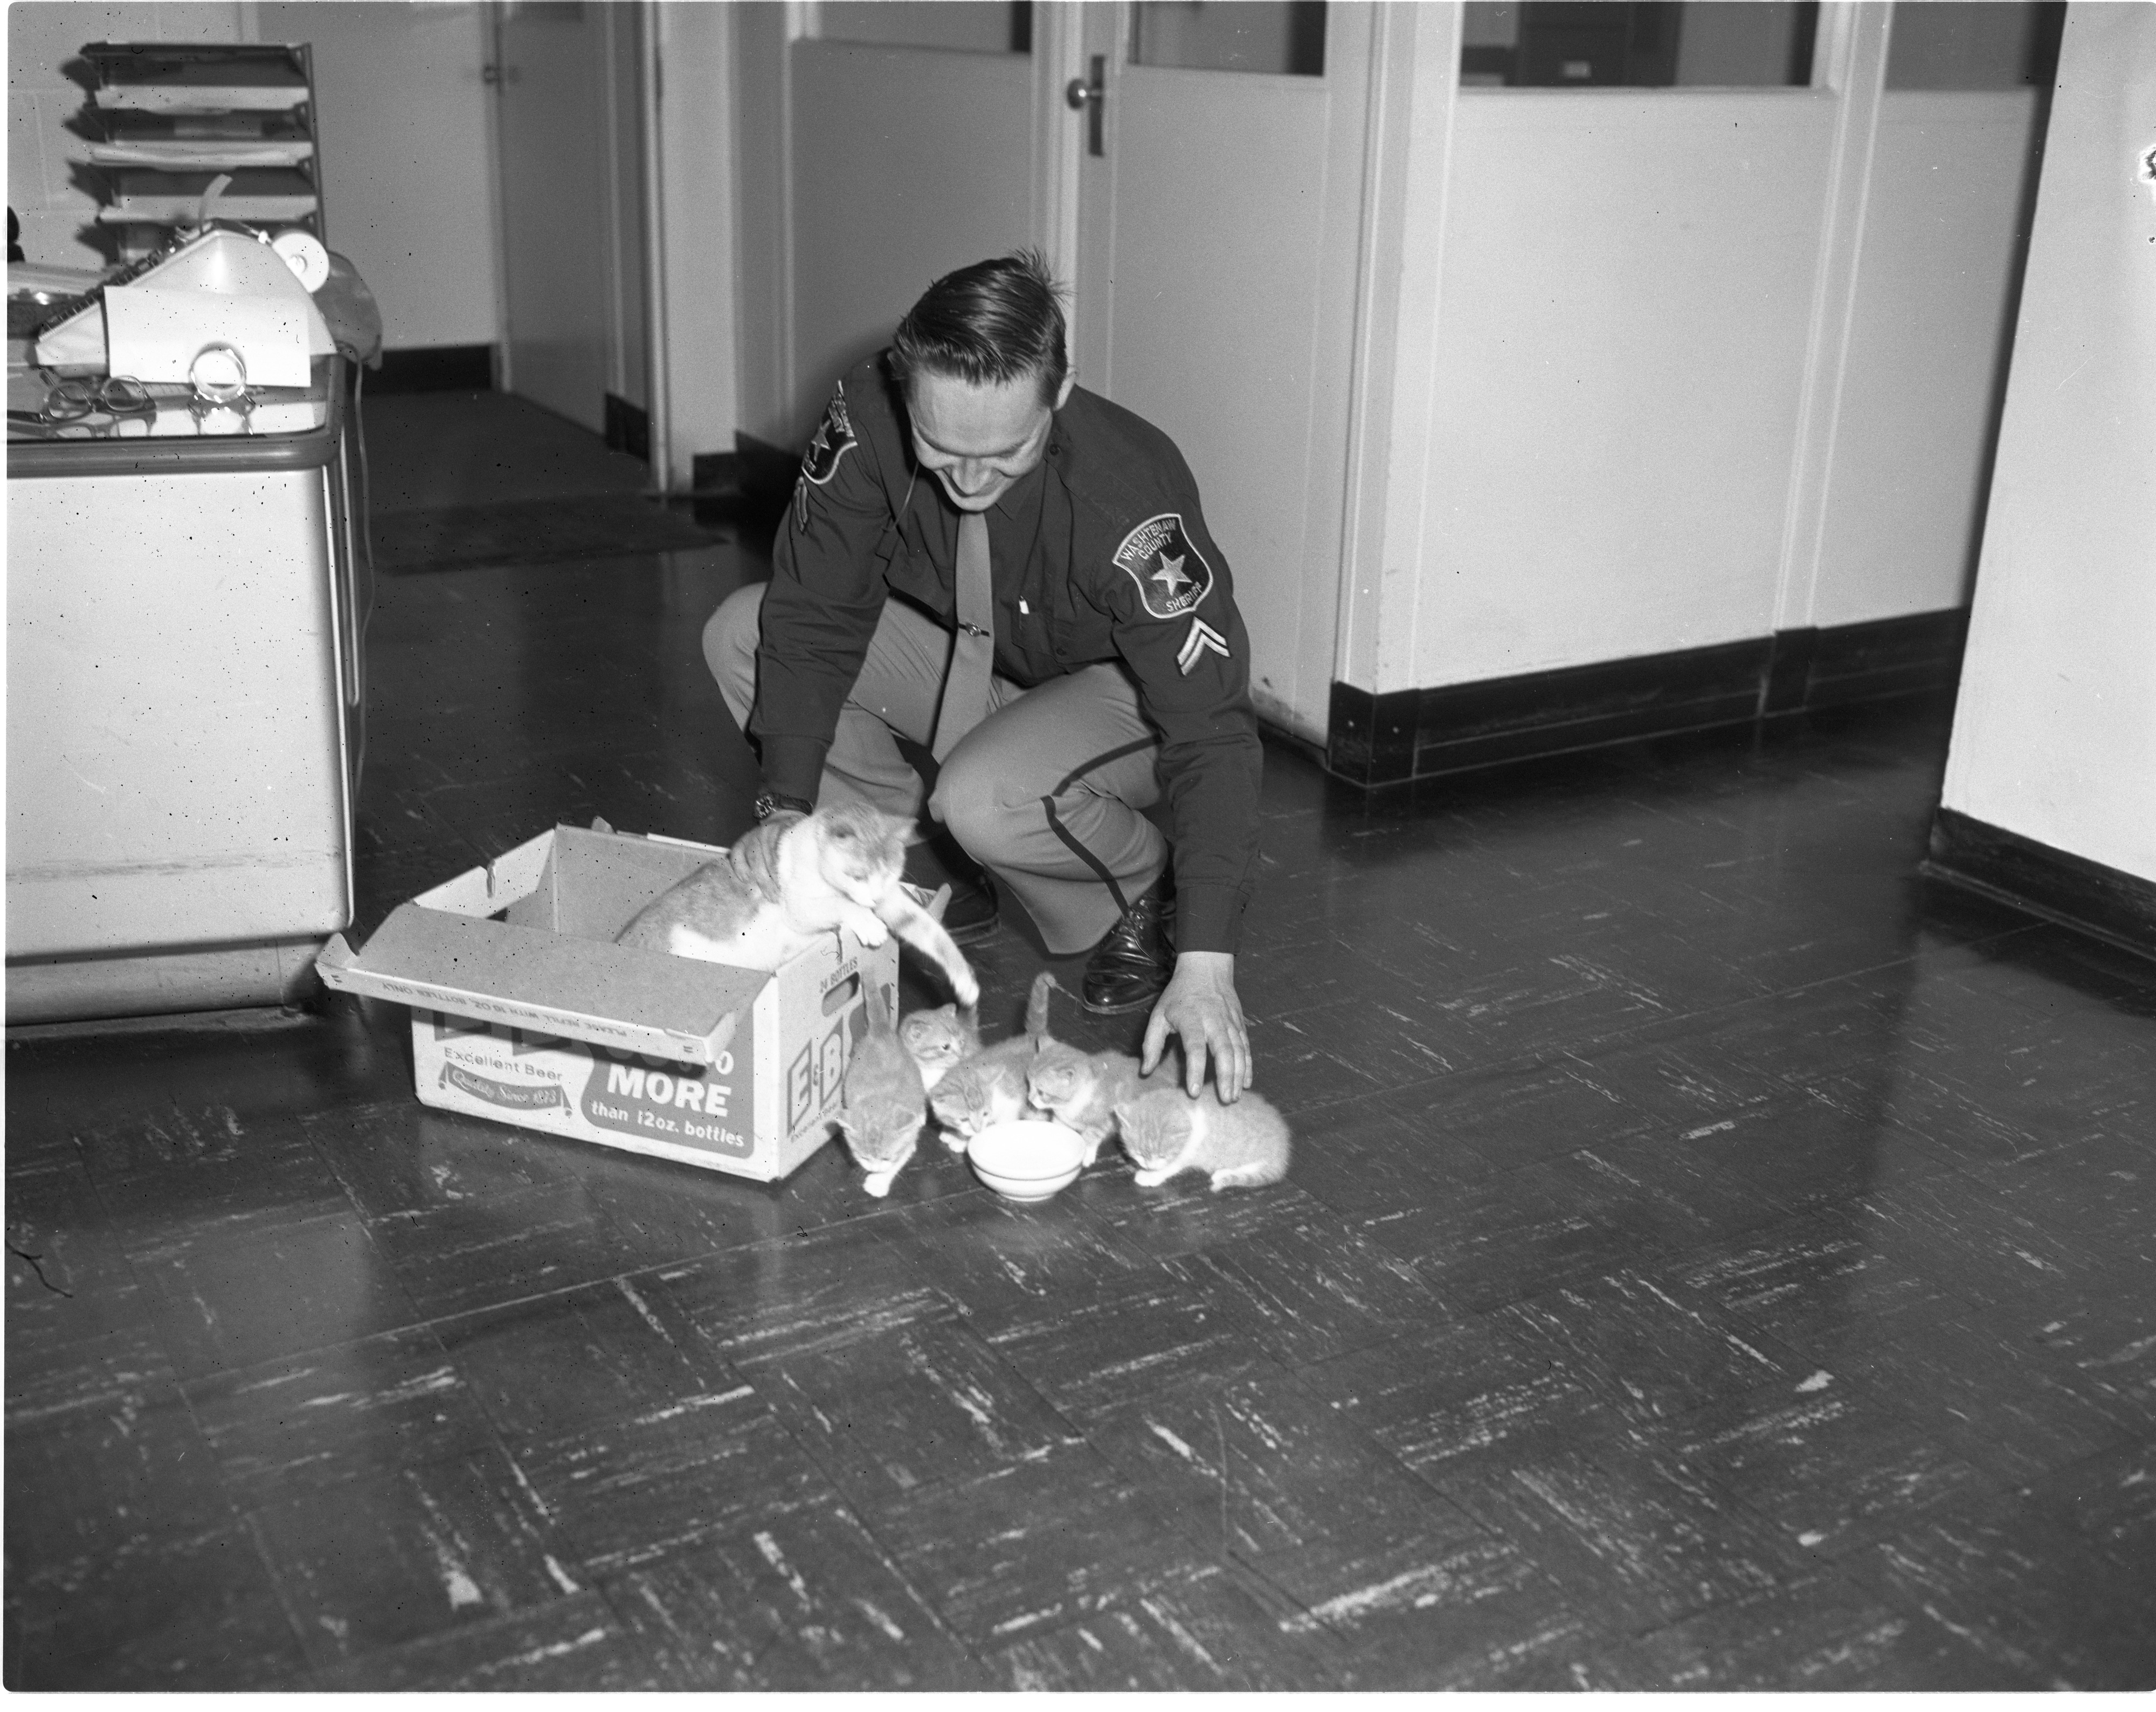 Cpl. David Severance And Abandoned Cats, March 1966 image